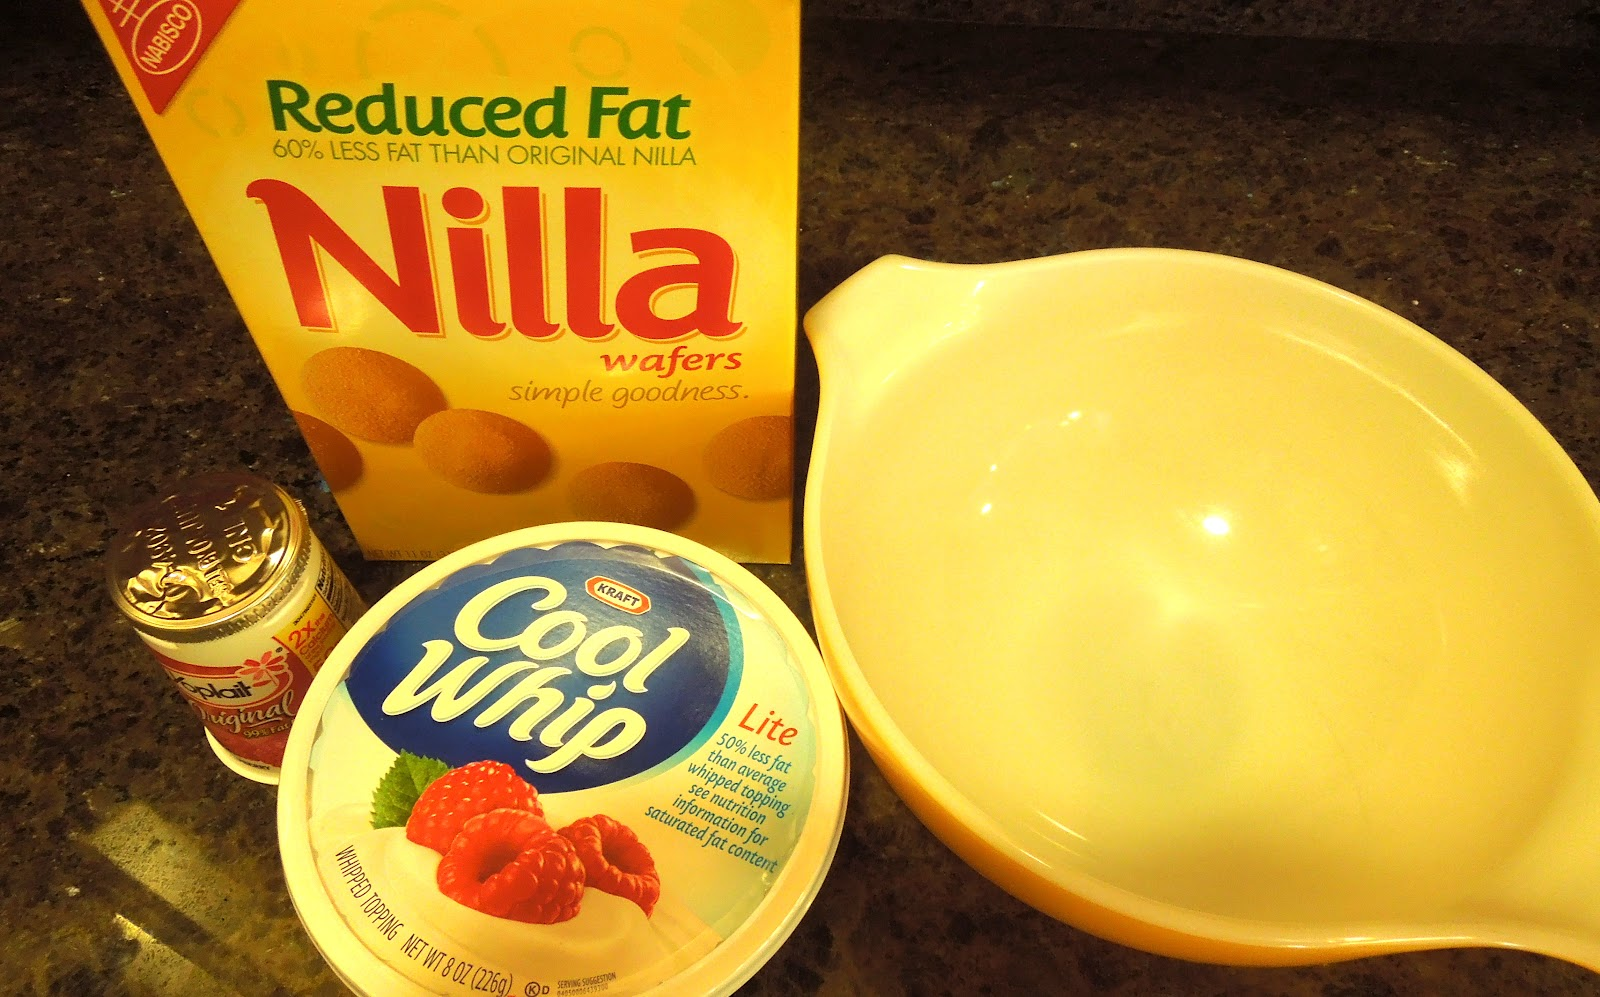 Food good for weight loss diet image 4